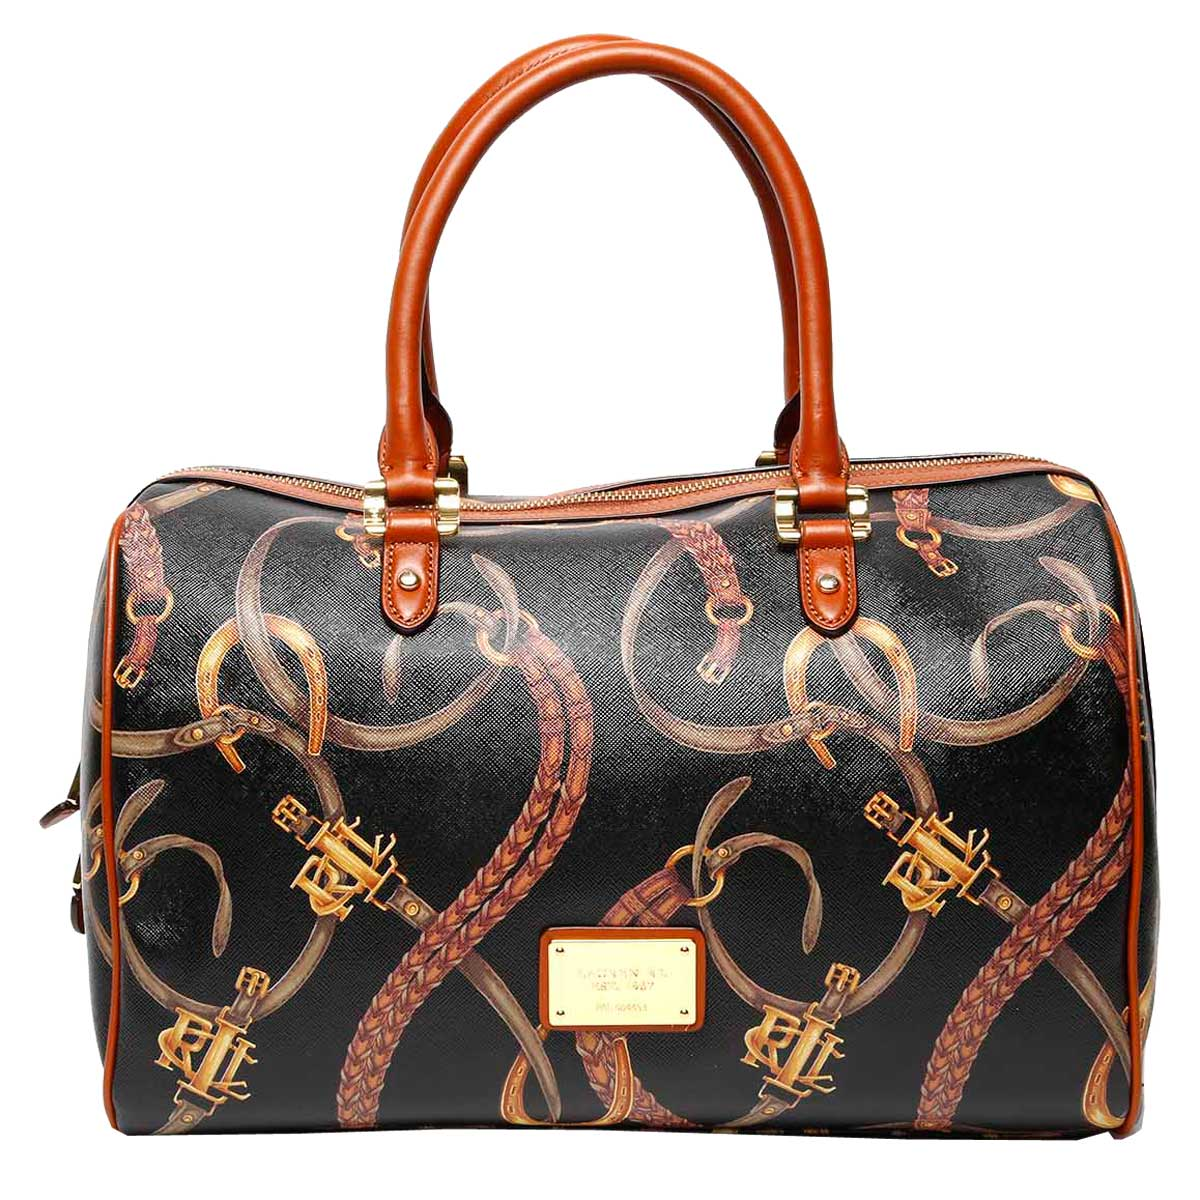 """The intertwining belts and polished hardware of this Lauren by Ralph Lauren """"Caldwell Belting Barrel"""" satchel will make a chic, timeless addition to your wardrobe."""